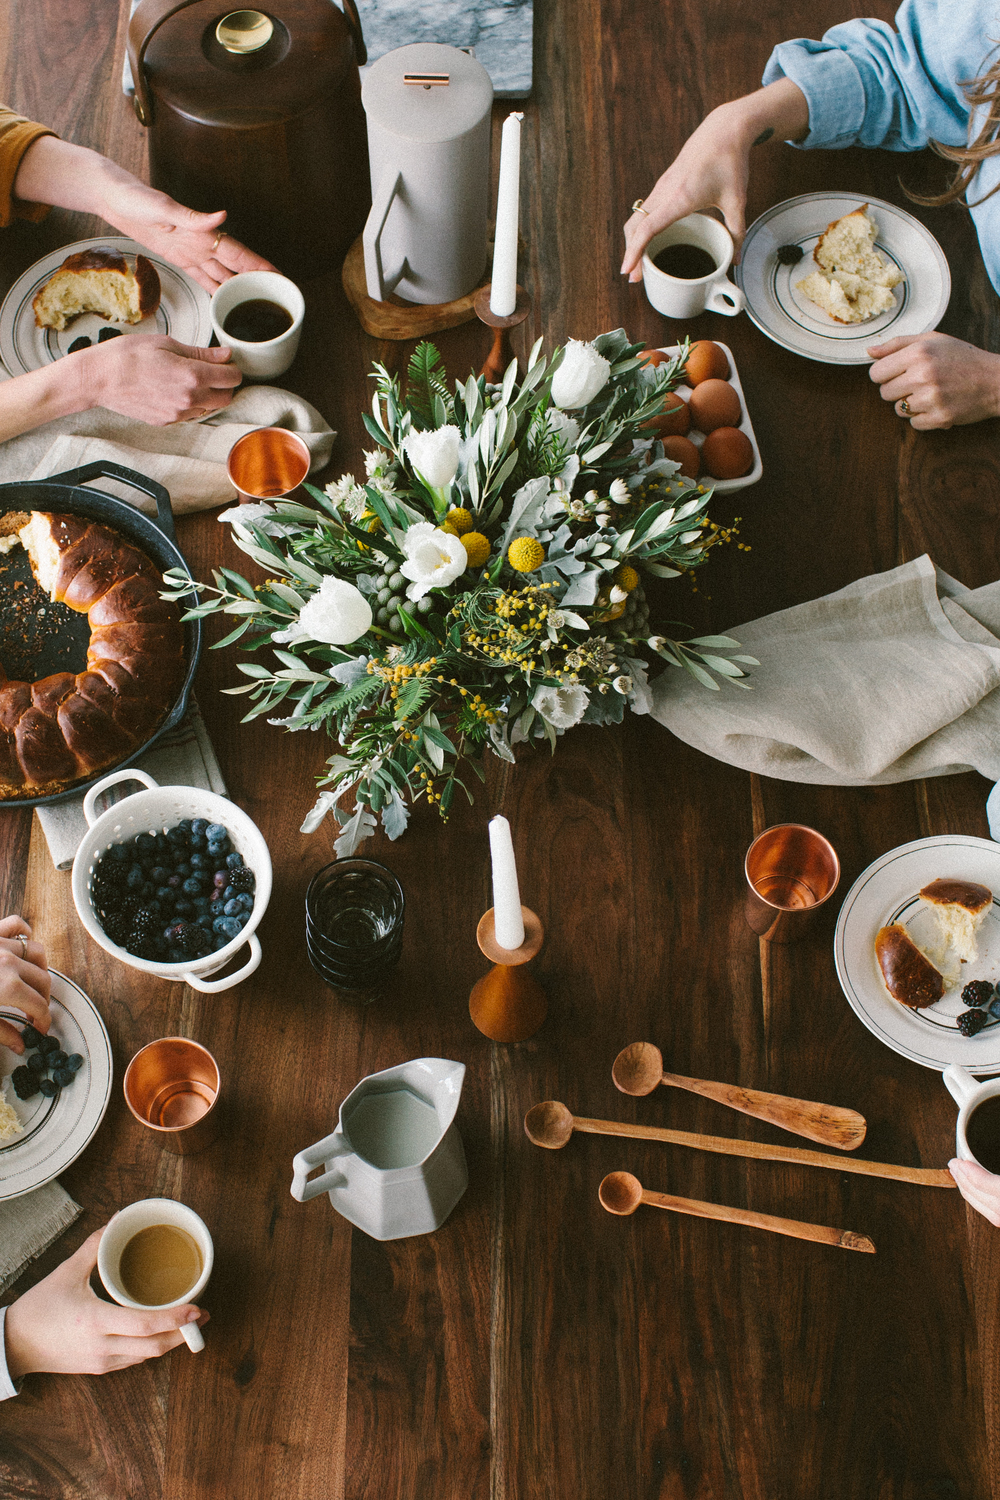 Styled Bridal Brunch. A modern palate with earth tones, natural materials, and mid-century design. Photography by Christina Foret. Venue & Styling by Atomic Furnishing in Asheville, North Carolina.